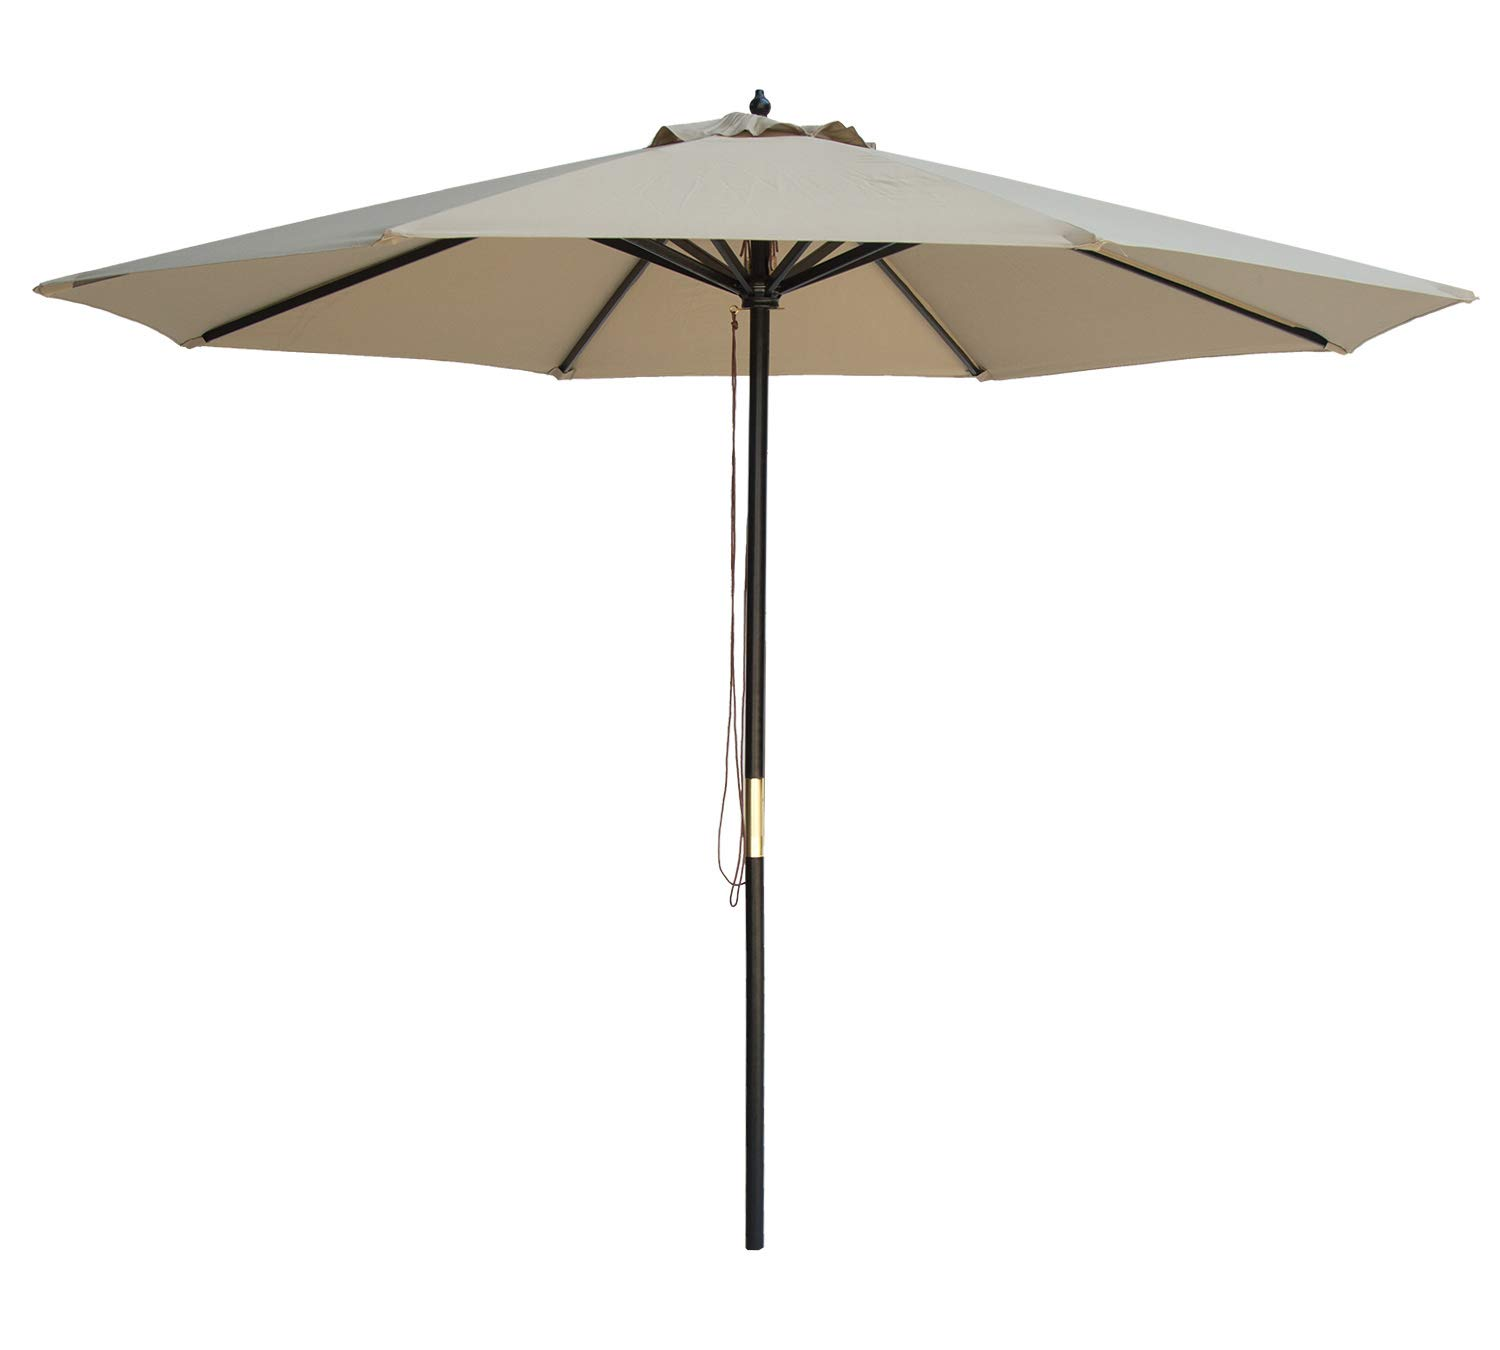 SUNBRANO 9 Ft Wood Frame Patio Umbrella Outdoor Garden Cafe Market Table Umbrella Pulley Lift with Air Vent, 8 Ribs, Taupe